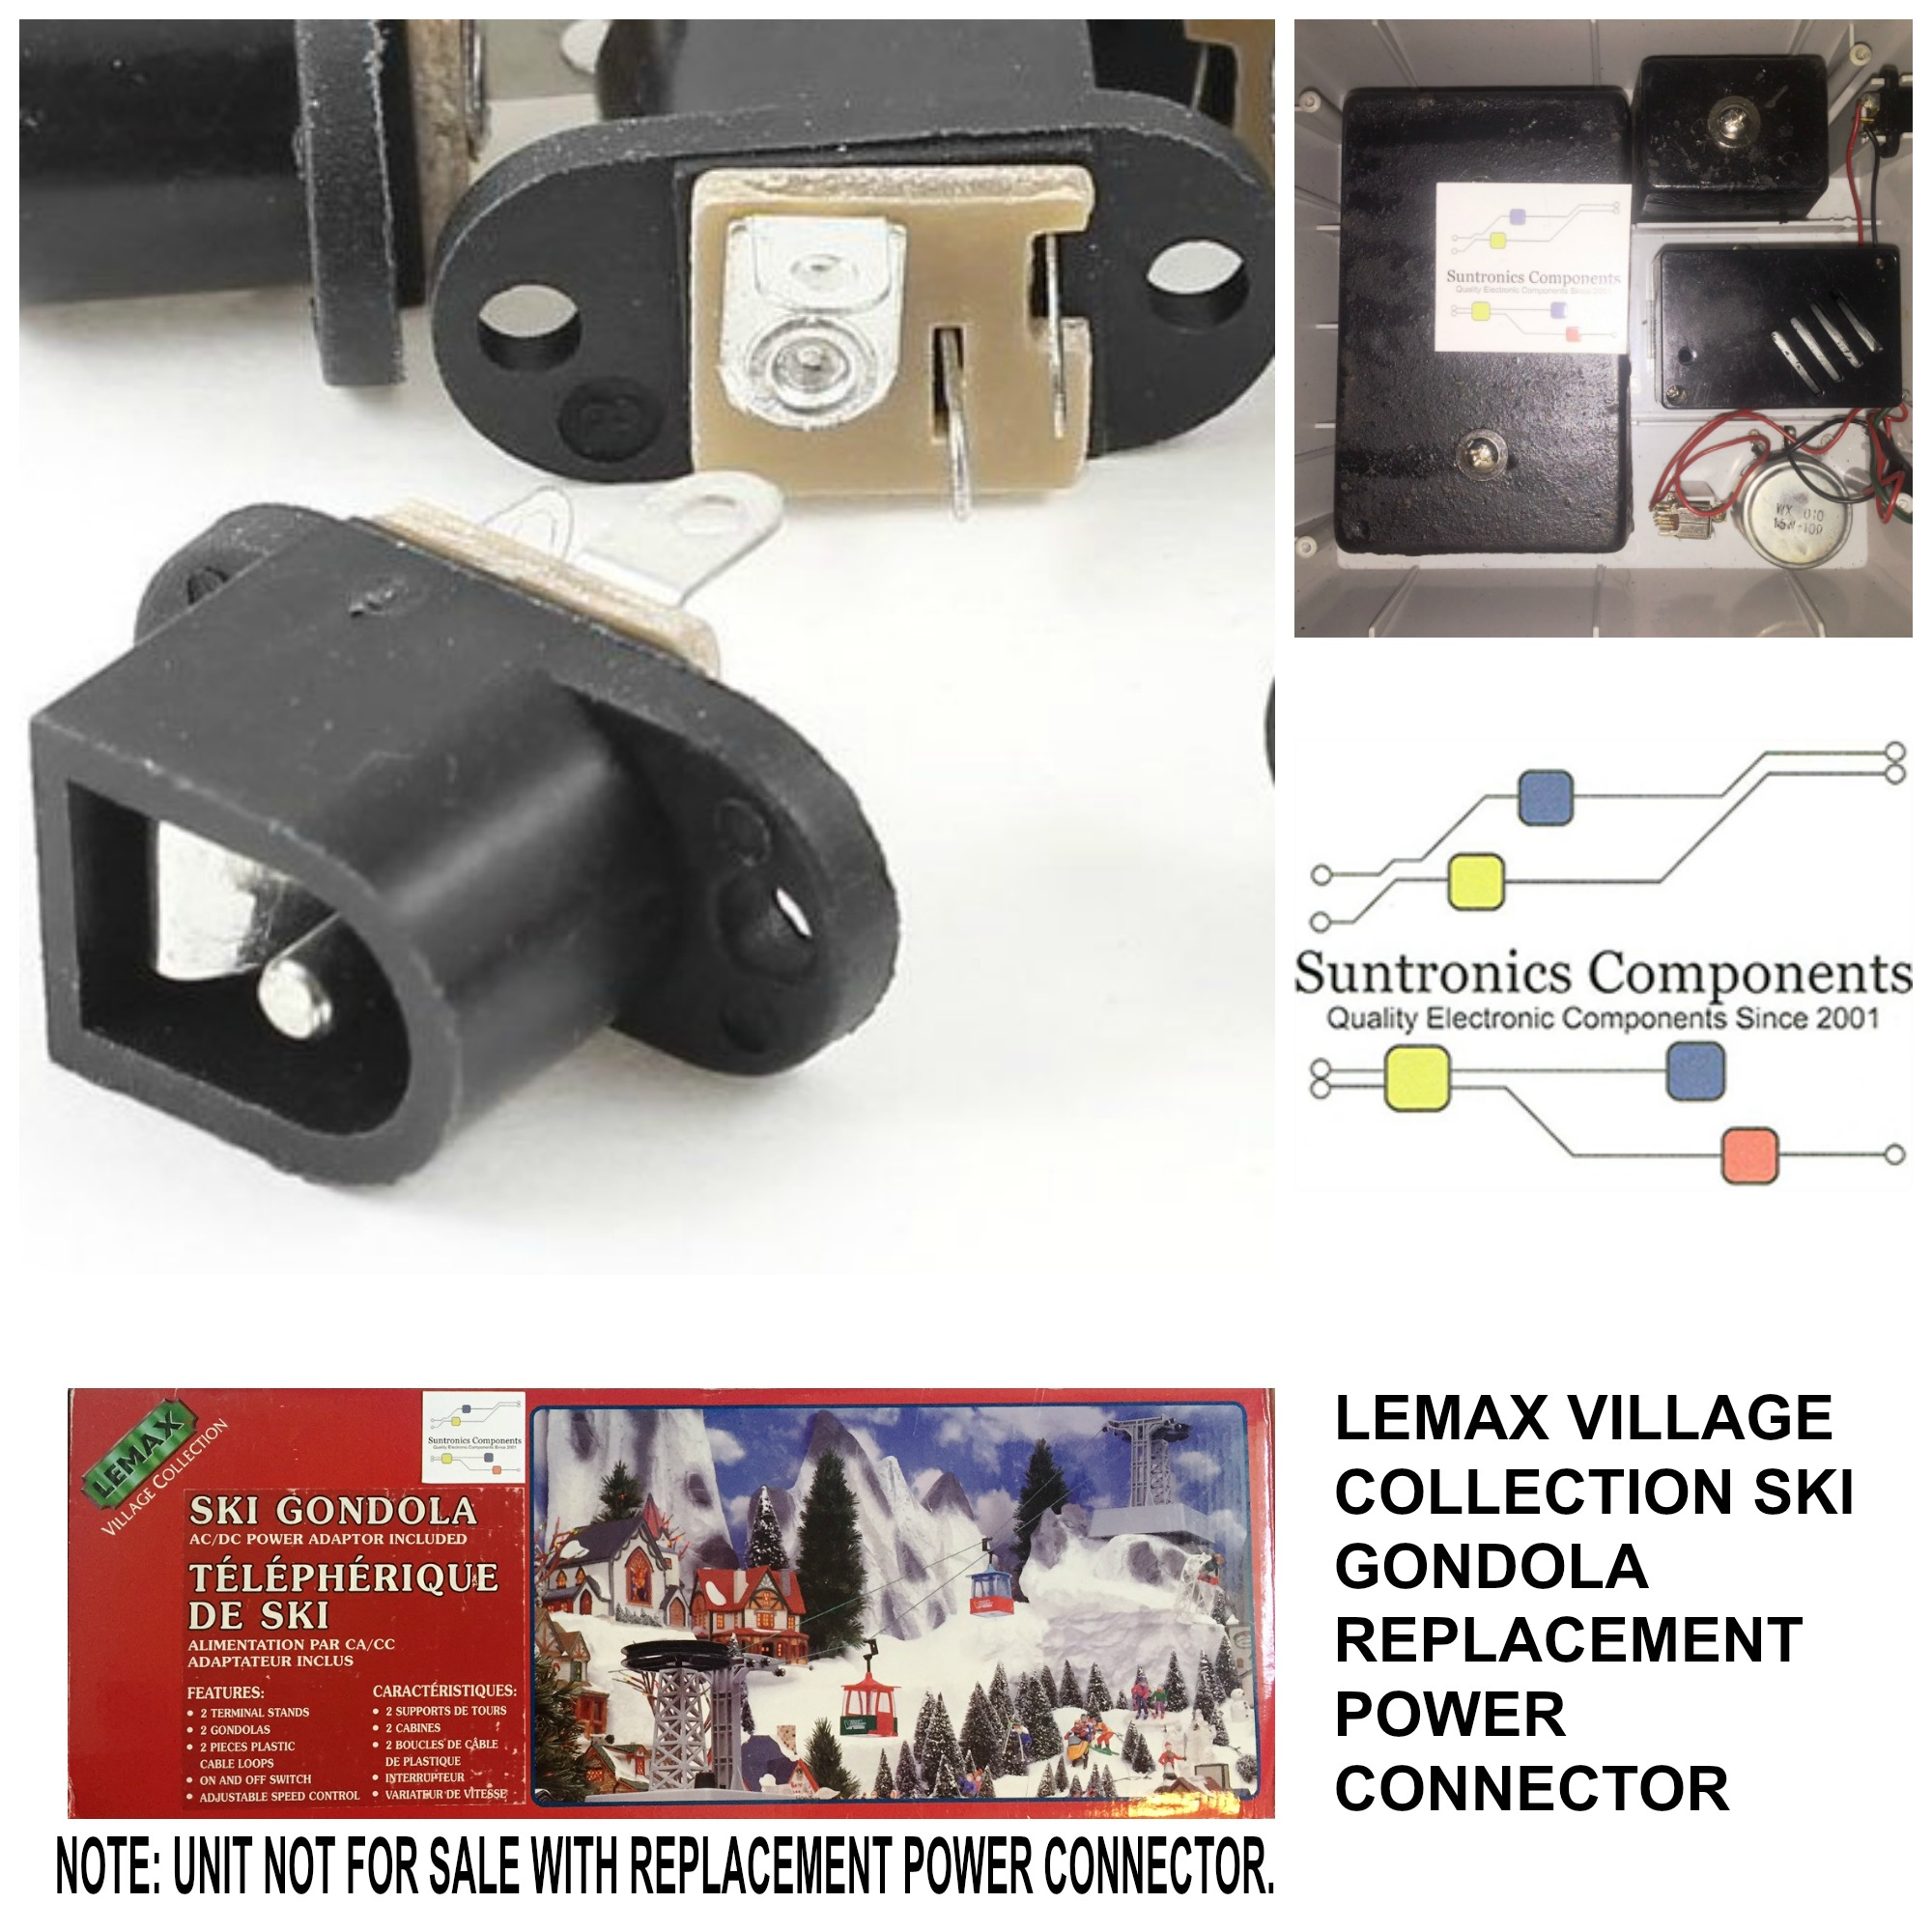 PicMonkey Image LEMAX VILLAGE COLLECTION SKI GONDOLA POWER CONNECTOR